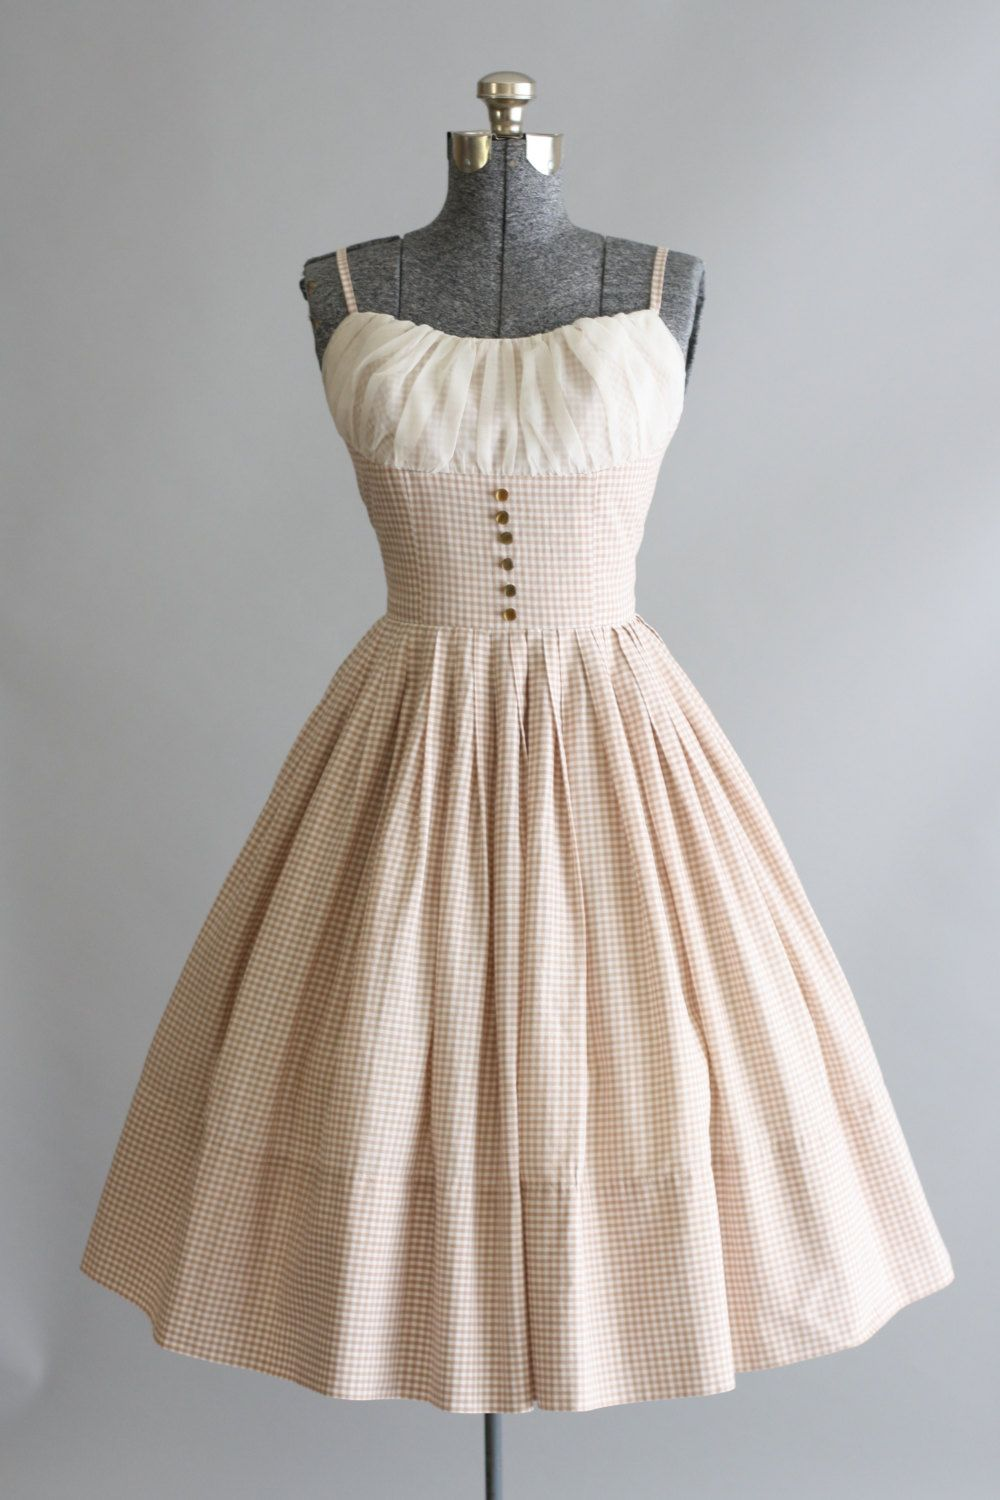 Vintage 14s Dress / 14s Cotton Dress / Tan and White Gingham Sun